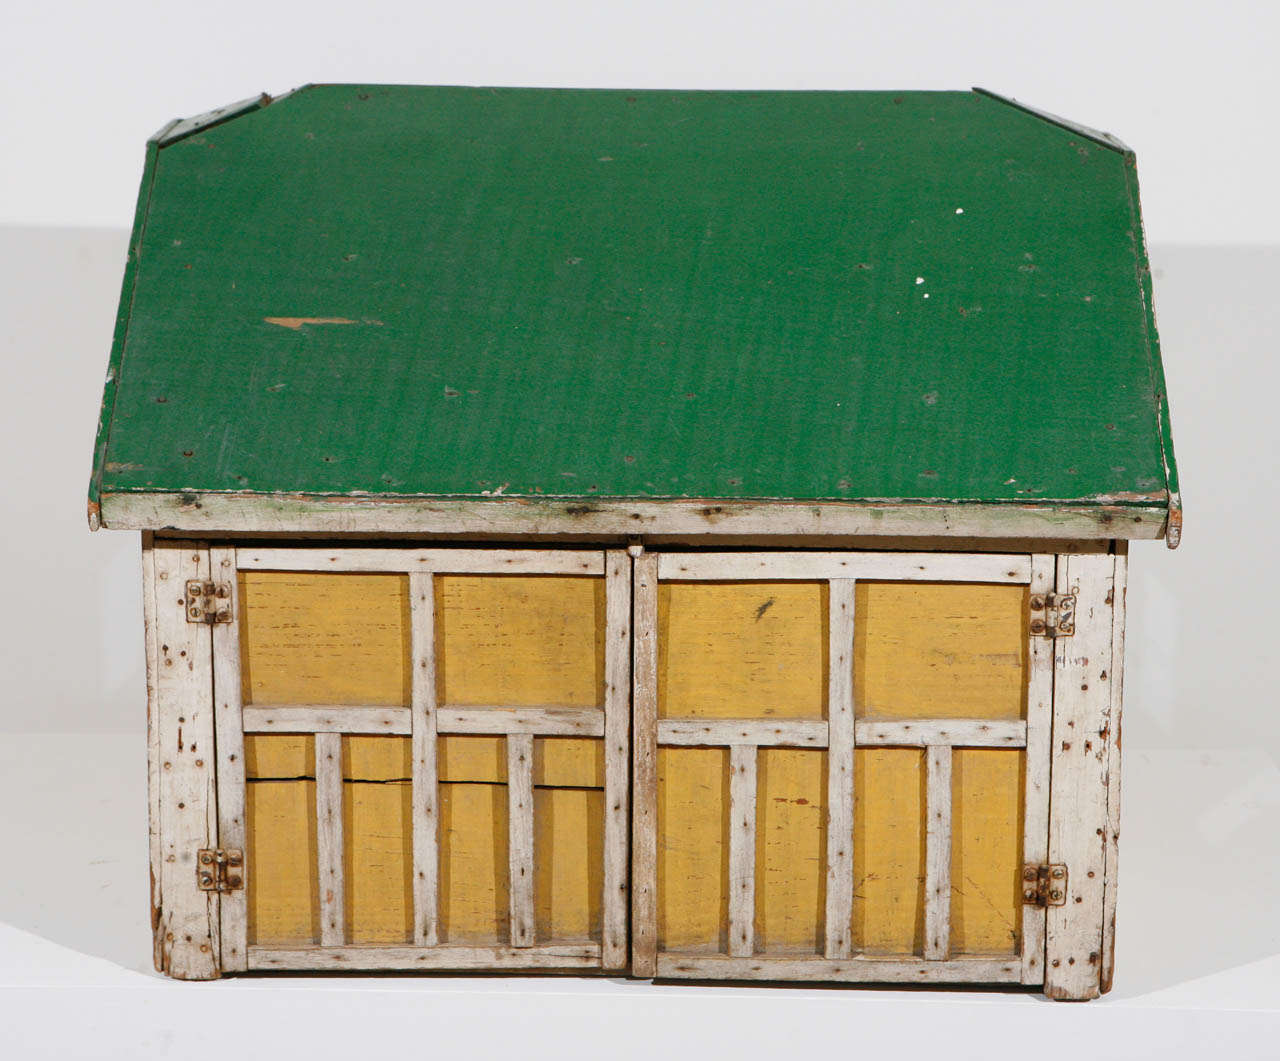 A wooden architectural model in original paint of a garage or barn structure, likely used as a child's play object, with a single door and three windows, along with a highly detailed set of double doors, which open on hinges. Made of scrap wood,